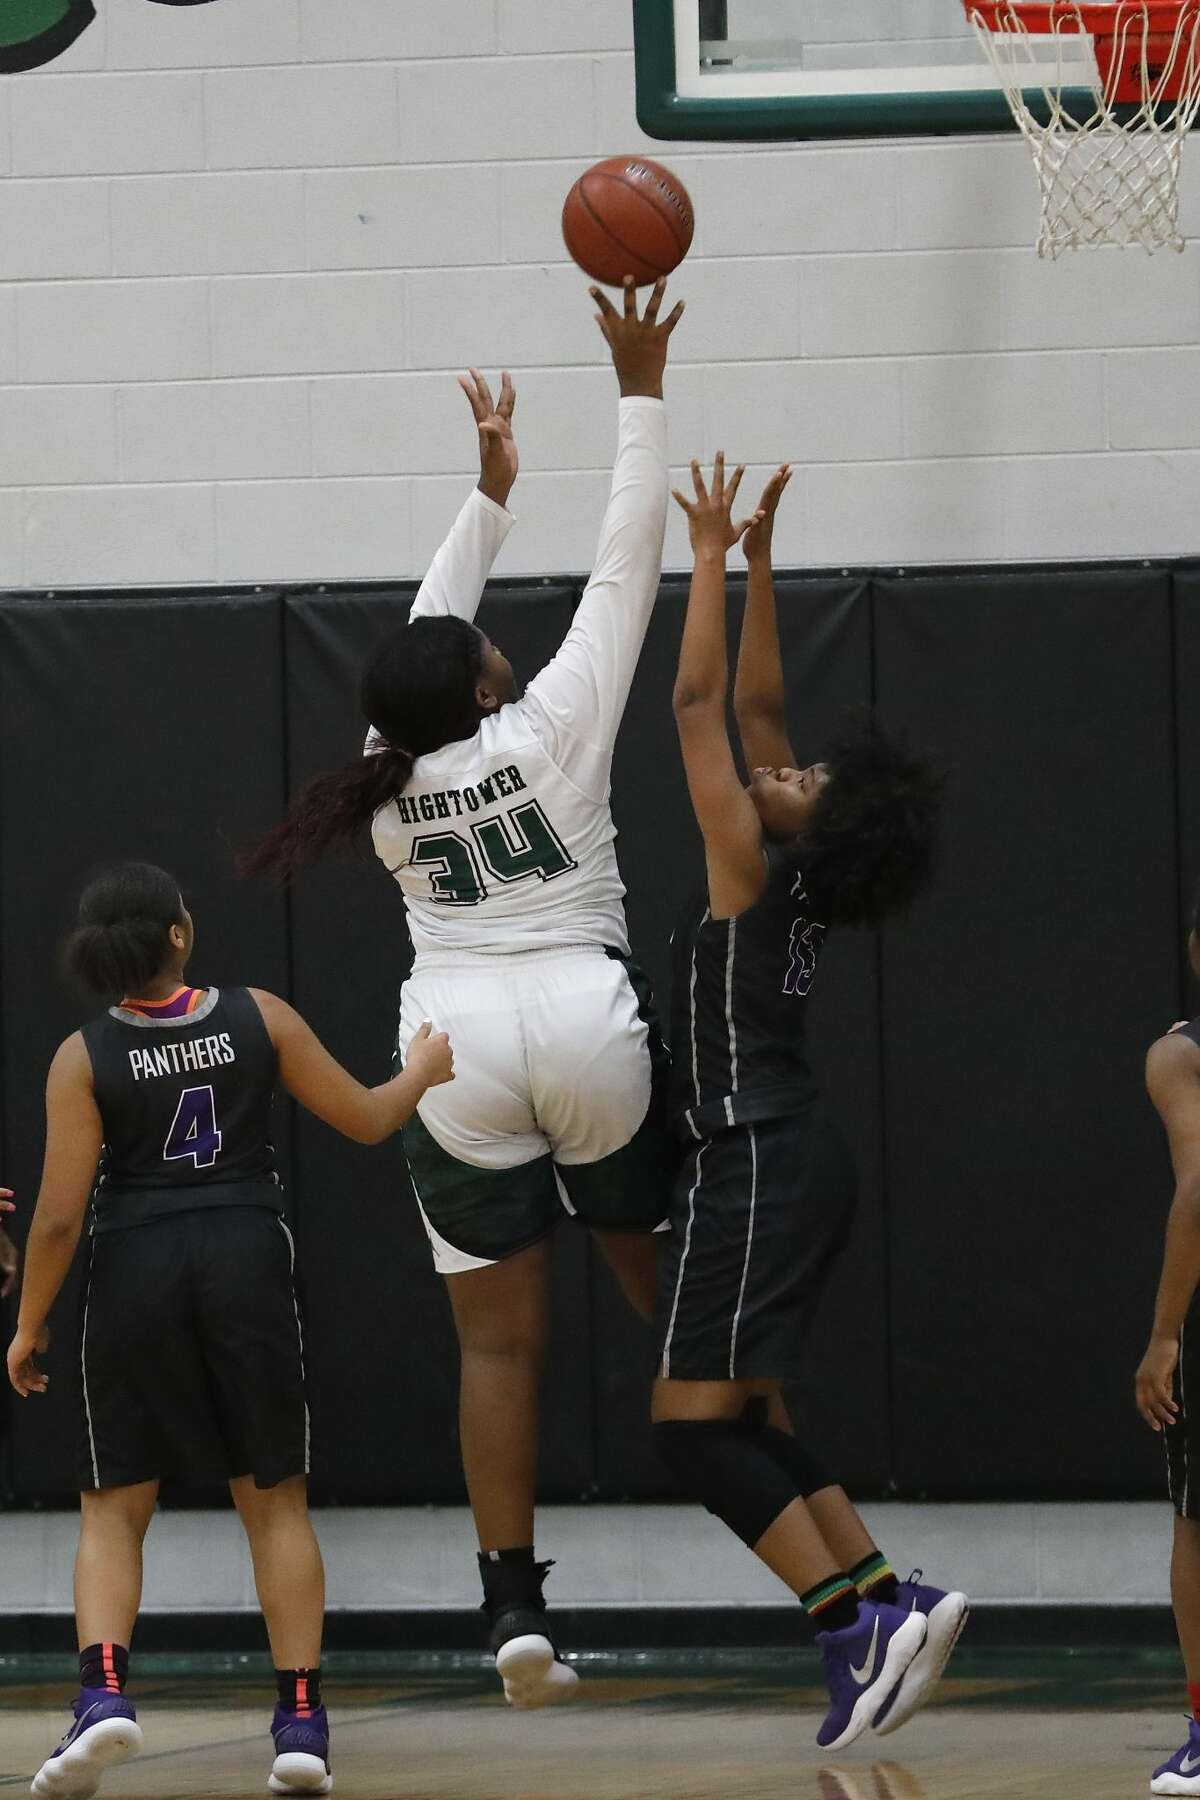 Fort Bend Hightower Hurricanes center Winnie Kuimi (34) shoots the ball defended by Ridge Point Panthers Alex Williams (13) in the first half during the girls high school basketball game between the Ridge Point Panthers and the Fort Bend Hightower Hurricanes at Hightower High School in Missouri City, TX on Friday, January 12, 2018.